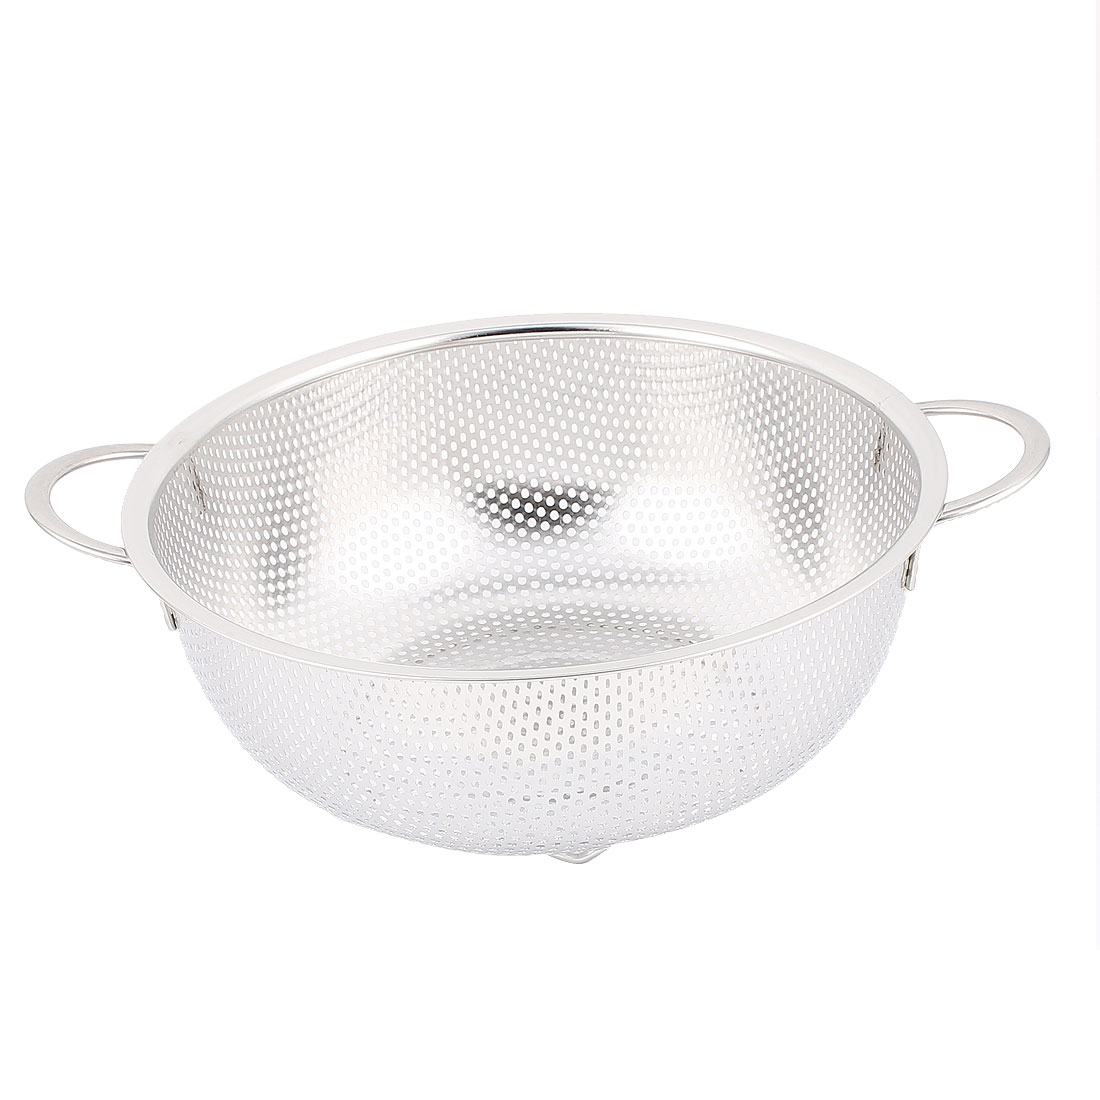 Kitchen Metal Vegetable Fruit Rice Washing Dainer Sieve Strainer Basket 8.5 Inch